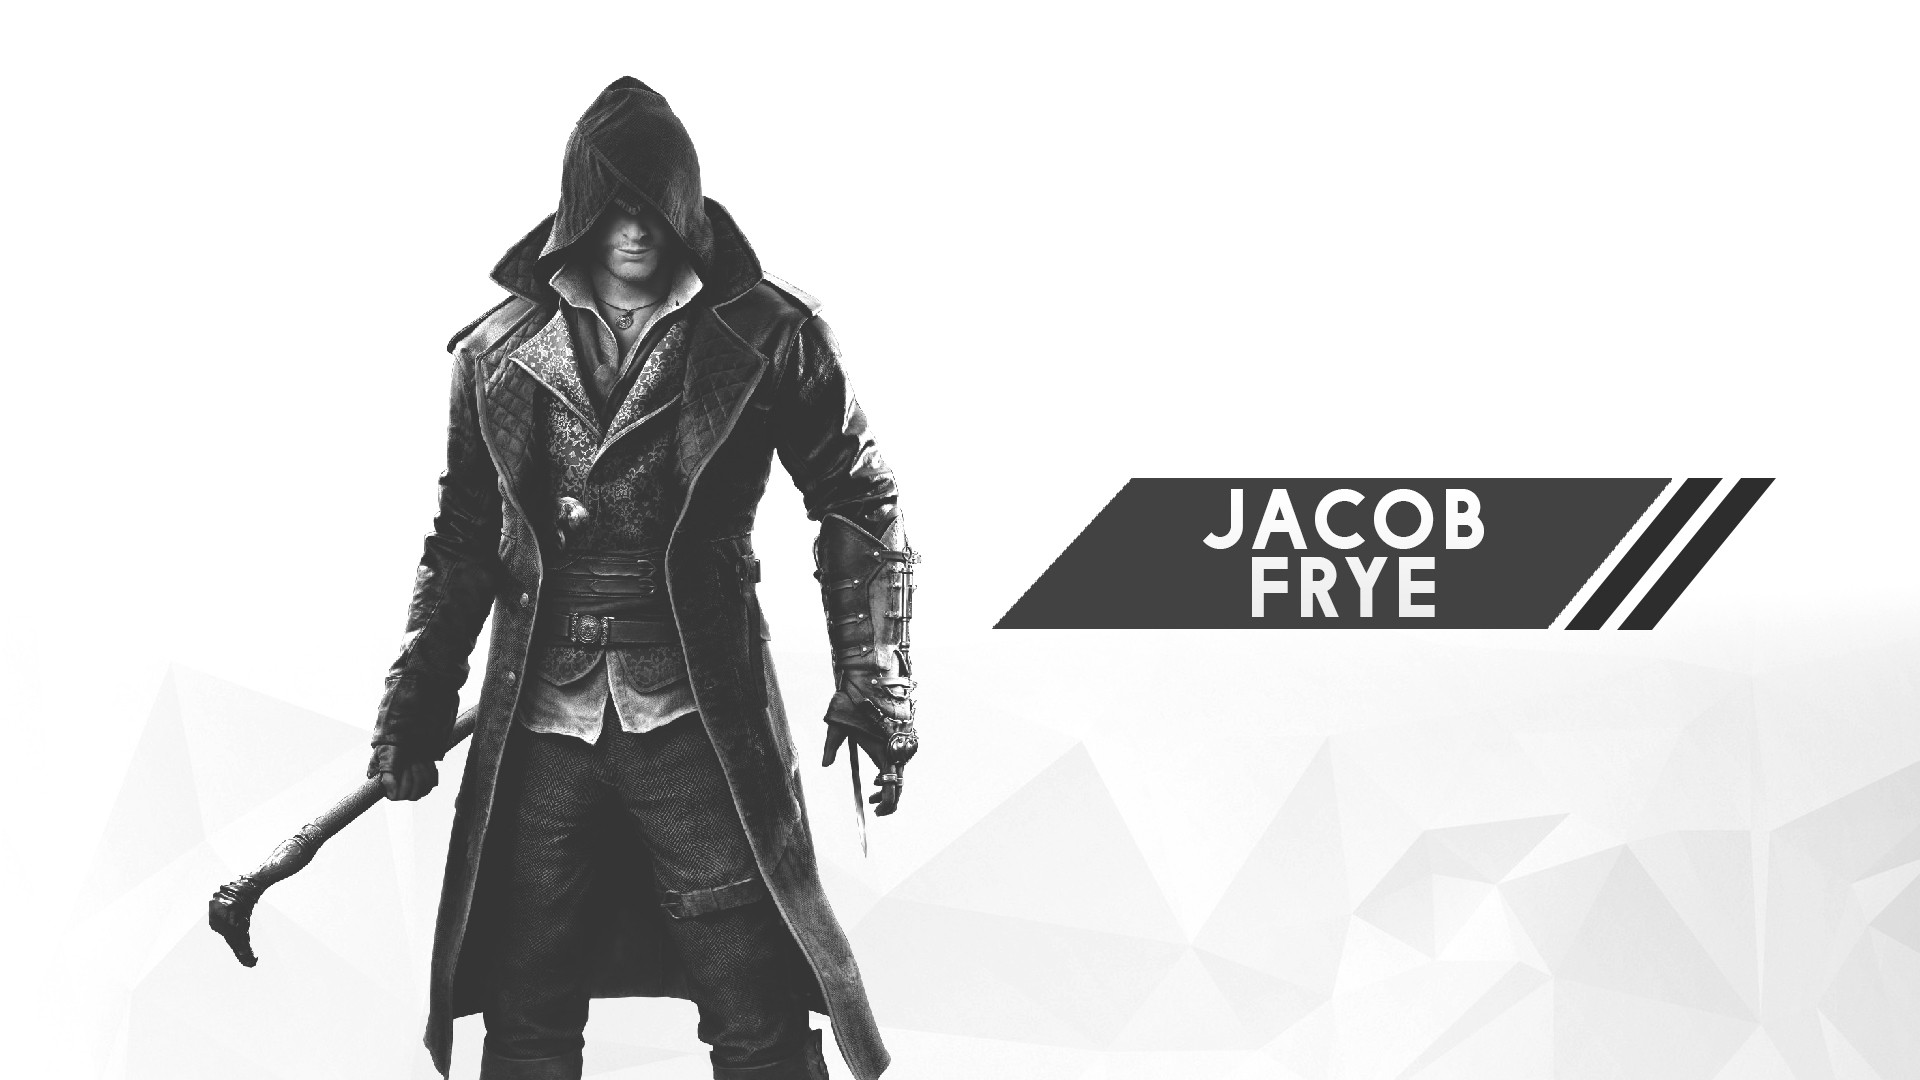 General 1920x1080 Assassin's Creed digital art minimalism 2D white white background video games Jacob Frye Assassin's Creed:  Unity